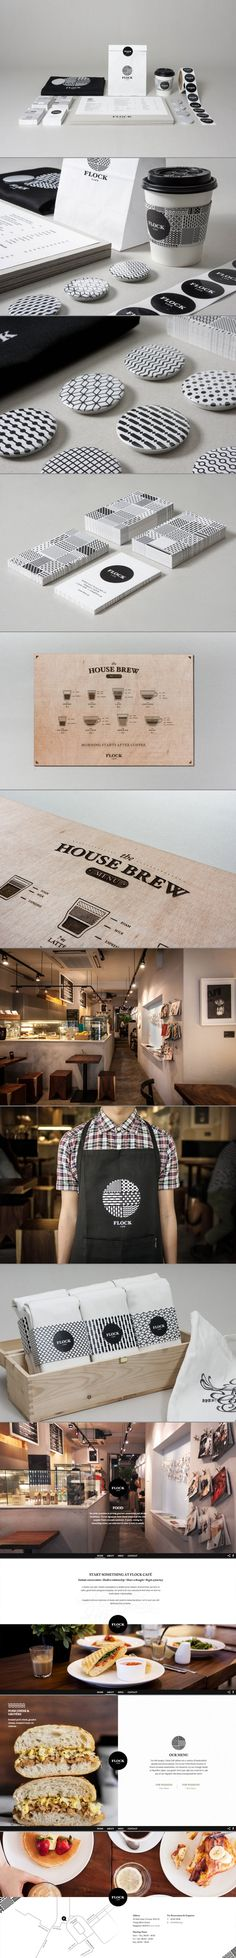 Flock Café by Kilo Studio, via Behance.